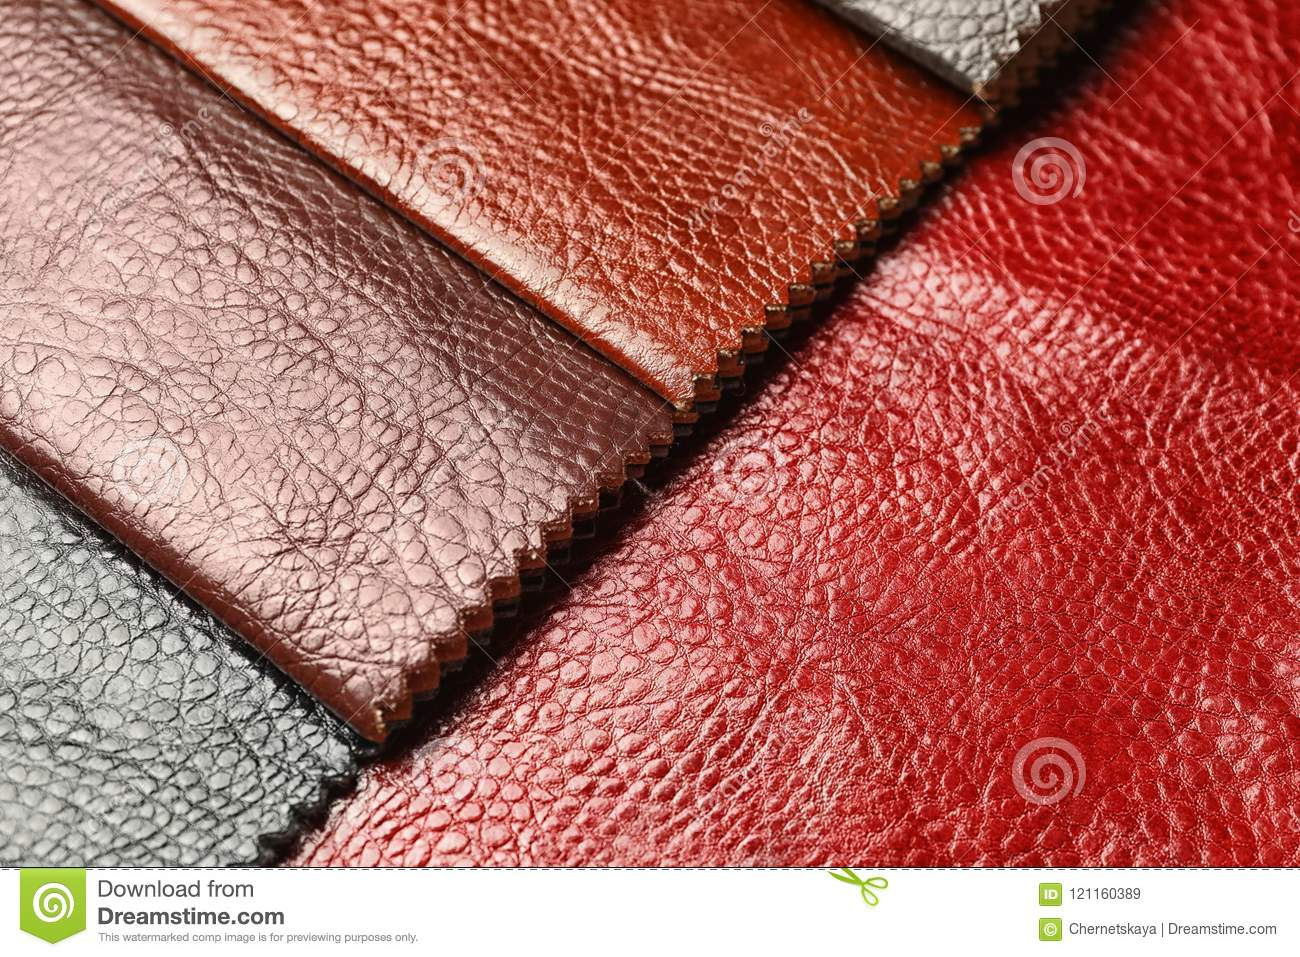 Leather samples of different colors for interior design